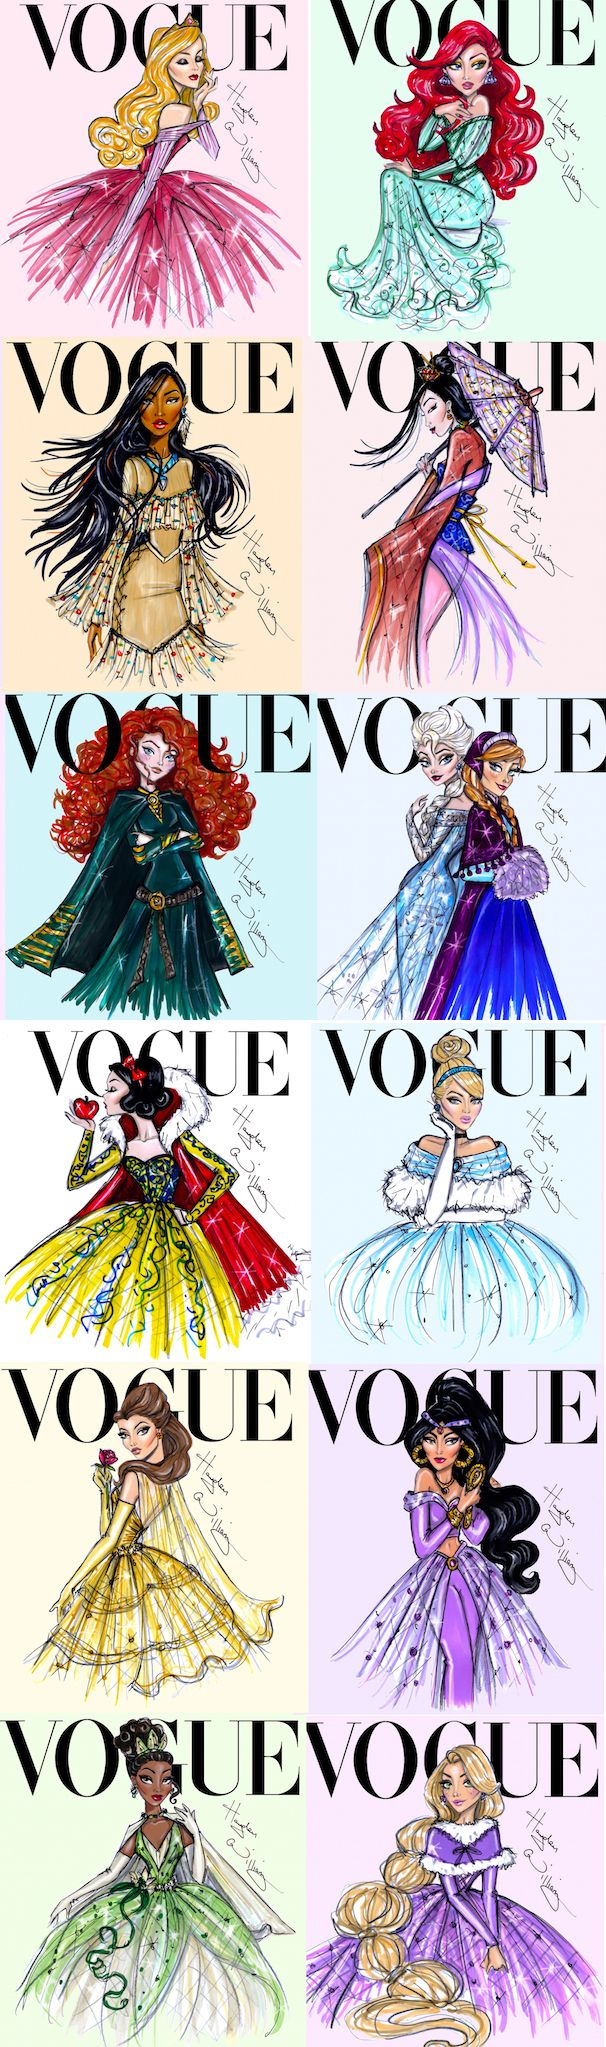 Hayden Williams Disney Princess Vogue.